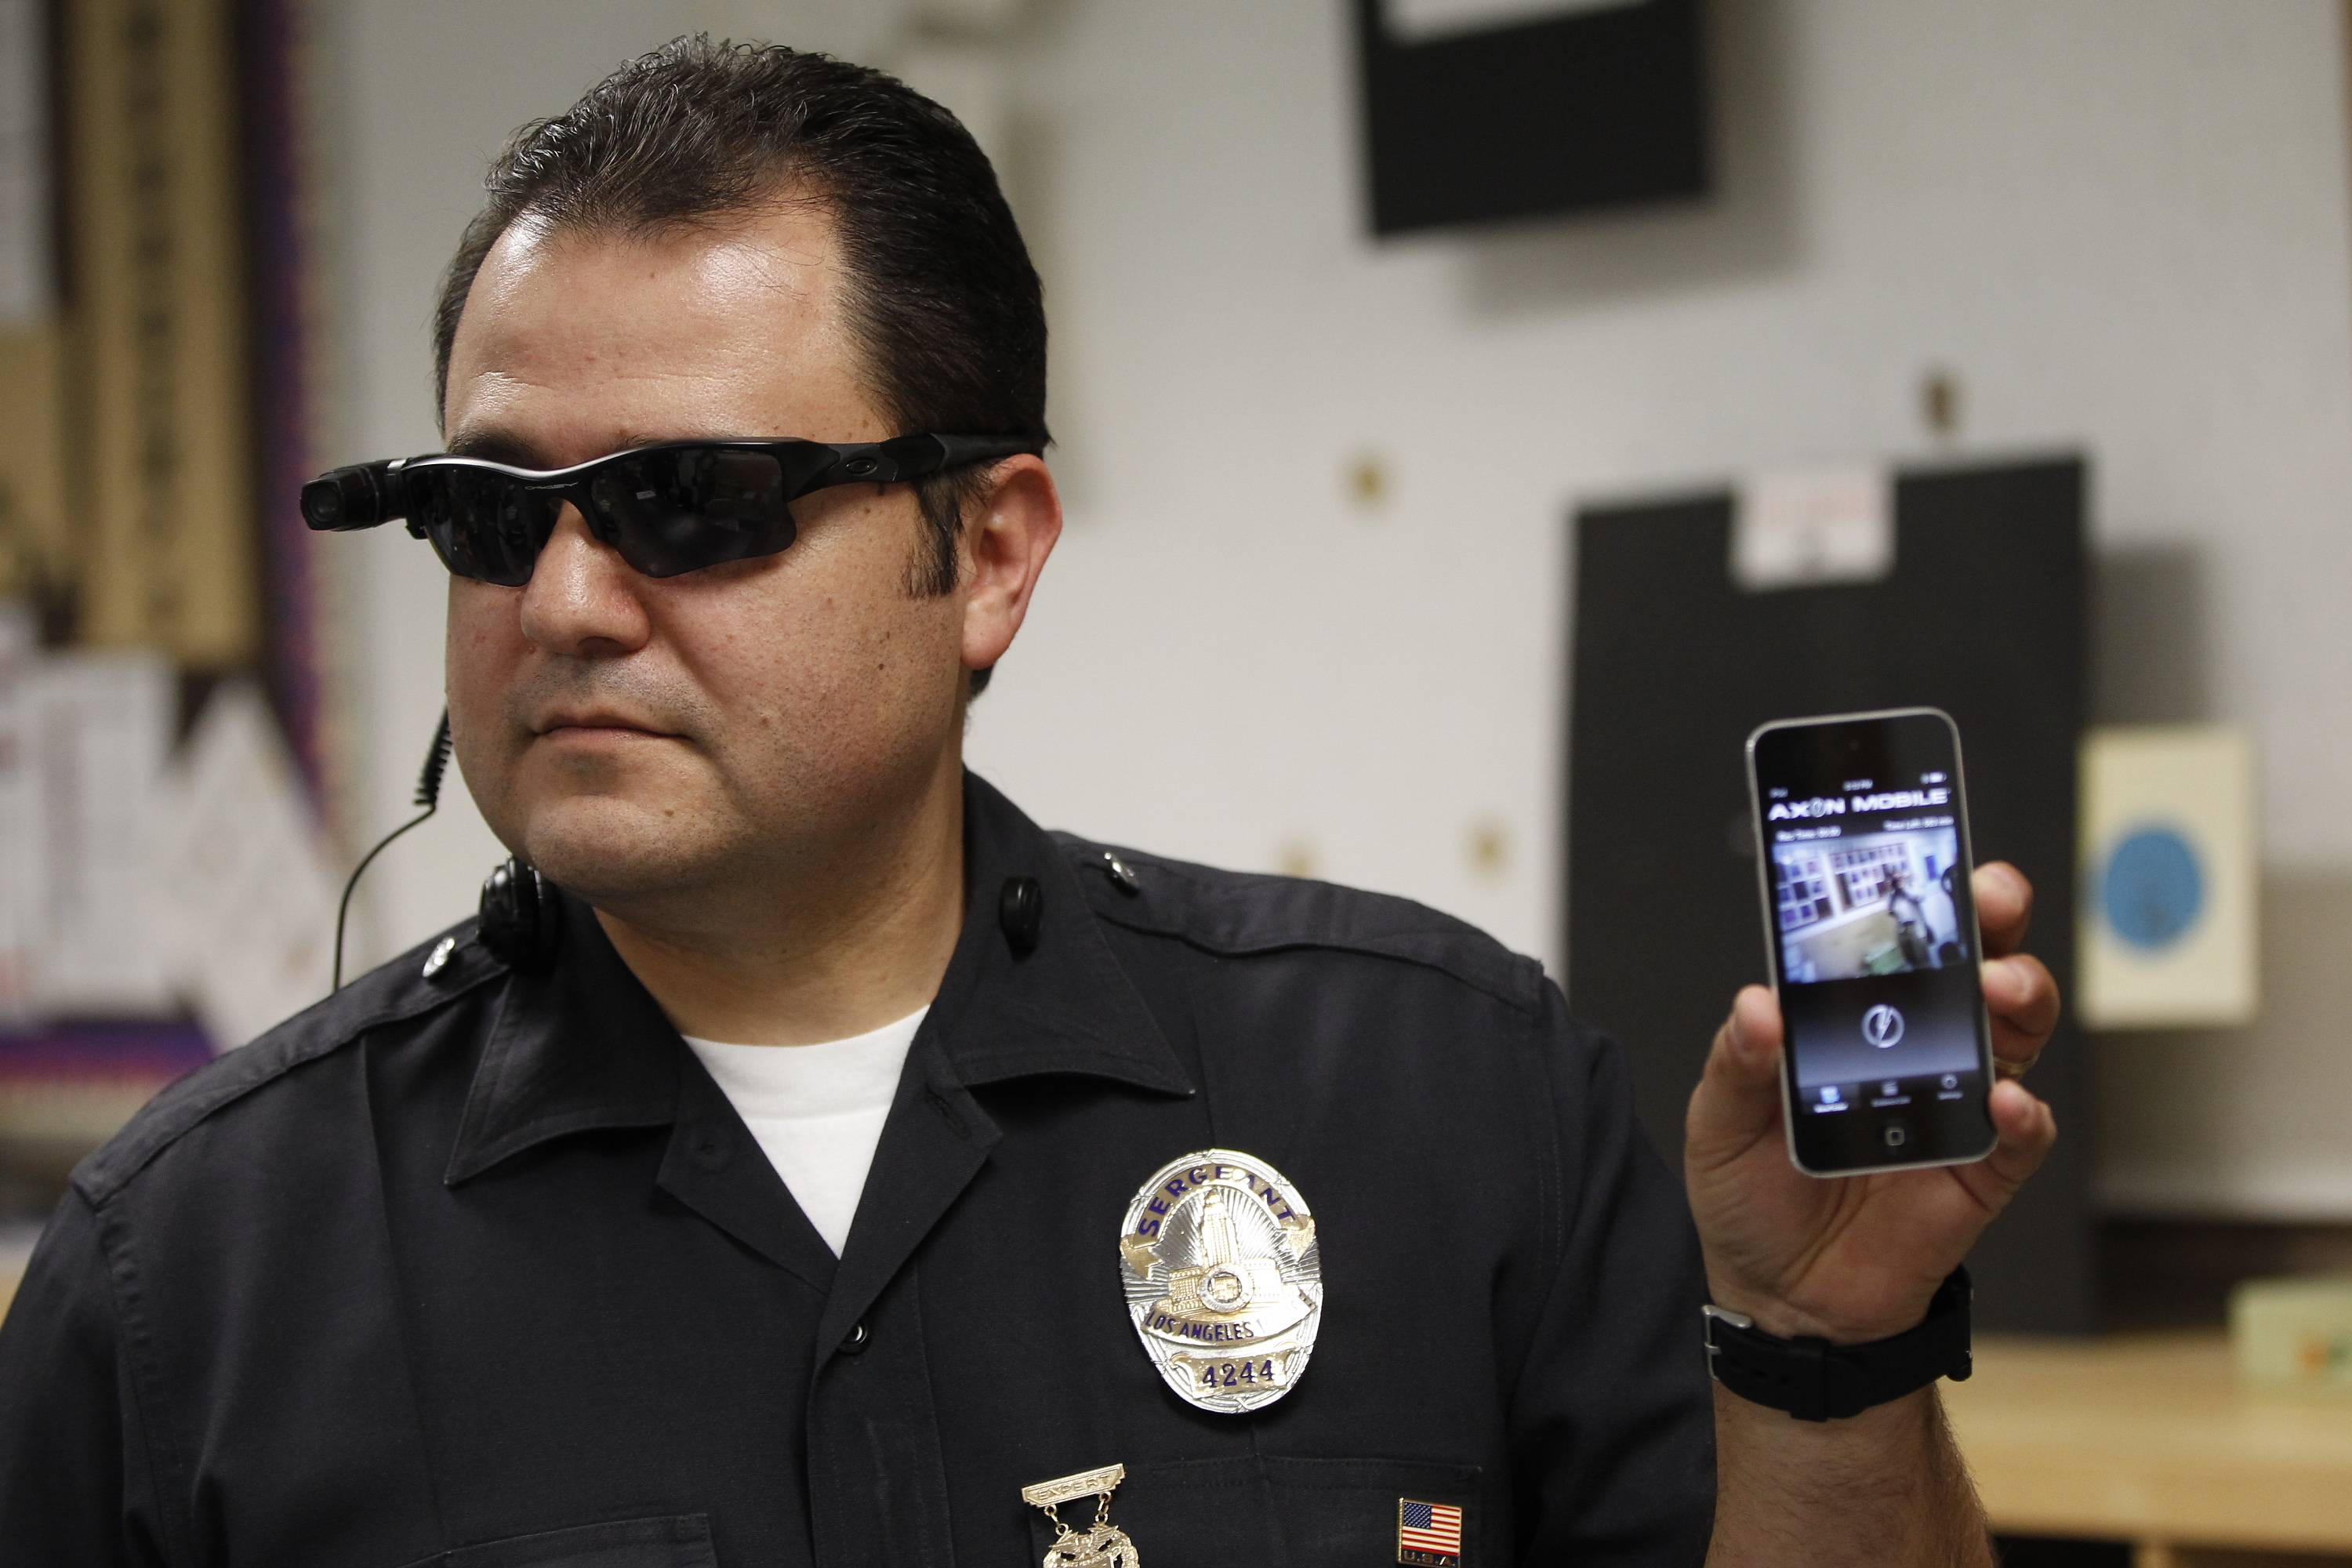 ADVANCE FOR MOVEMENT SATURDAY MARCH 15 - This Jan. 15, 2014 file photo shows Los Angeles Police Sgt. Daniel Gomez demonstrating a video feed from his camera into his cellphone as on-body cameras are demonstrated for the media in Los Angeles. Thousands of police agencies have equipped officers with cameras to wear with their uniforms, but they've frequently lagged in setting policies on how they're used, potentially putting privacy at risk and increasing their liability. As officers in one of every six departments across the nation now patrols with tiny lenses on their chests, lapels or sunglasses, administrators and civil liberties experts are trying to envision and address troublesome scenarios that could unfold in front of a live camera. (AP Photo/Damian Dovarganes)